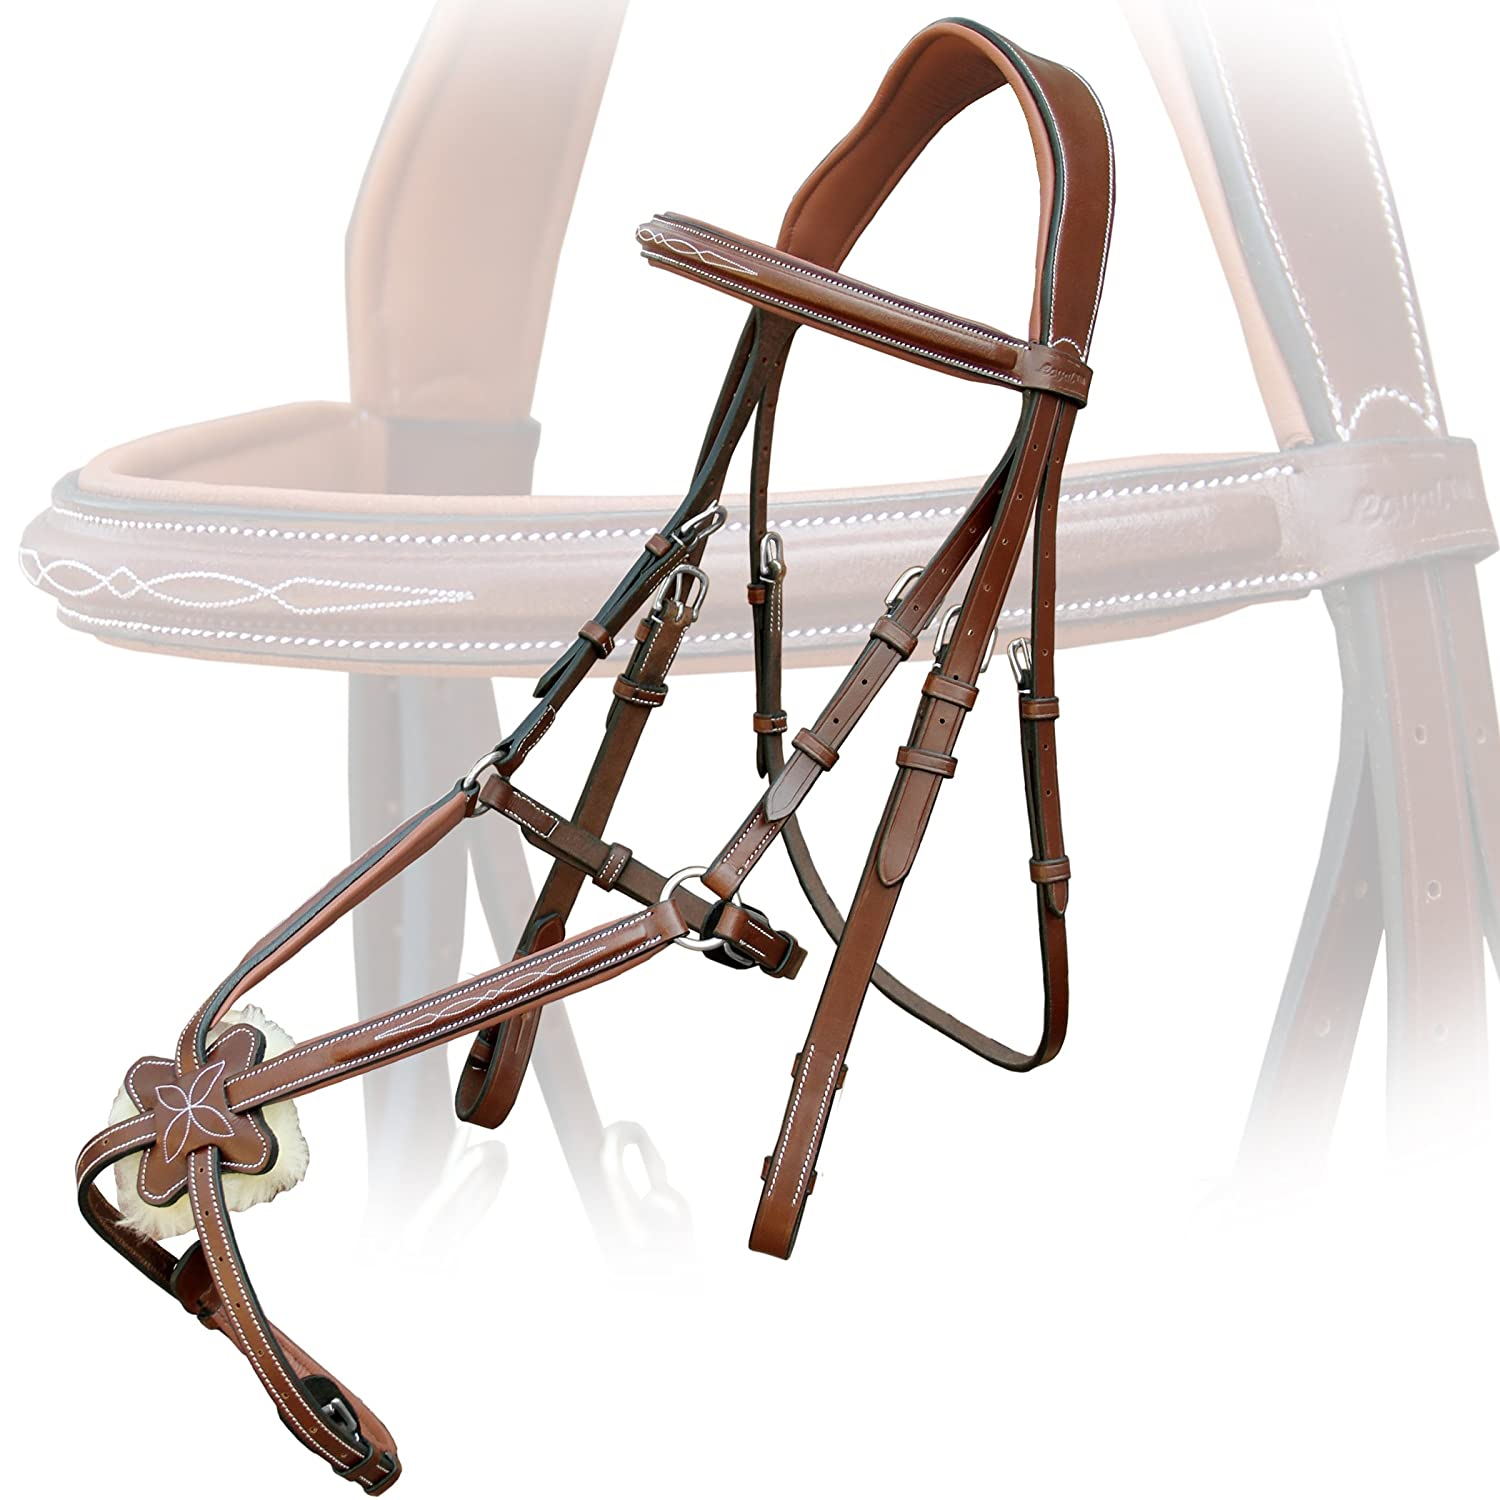 Conker (Tan Brown) Warm Blood (Over)Exion Fancy Square Raised Mexican Adjustable Leather Bridle with PP Rubber Grip Reins and Stainless Steel Buckles   Equestrian Show Jumping Padded Bridle Set   English Horse Riding Tack   Havana   Cob